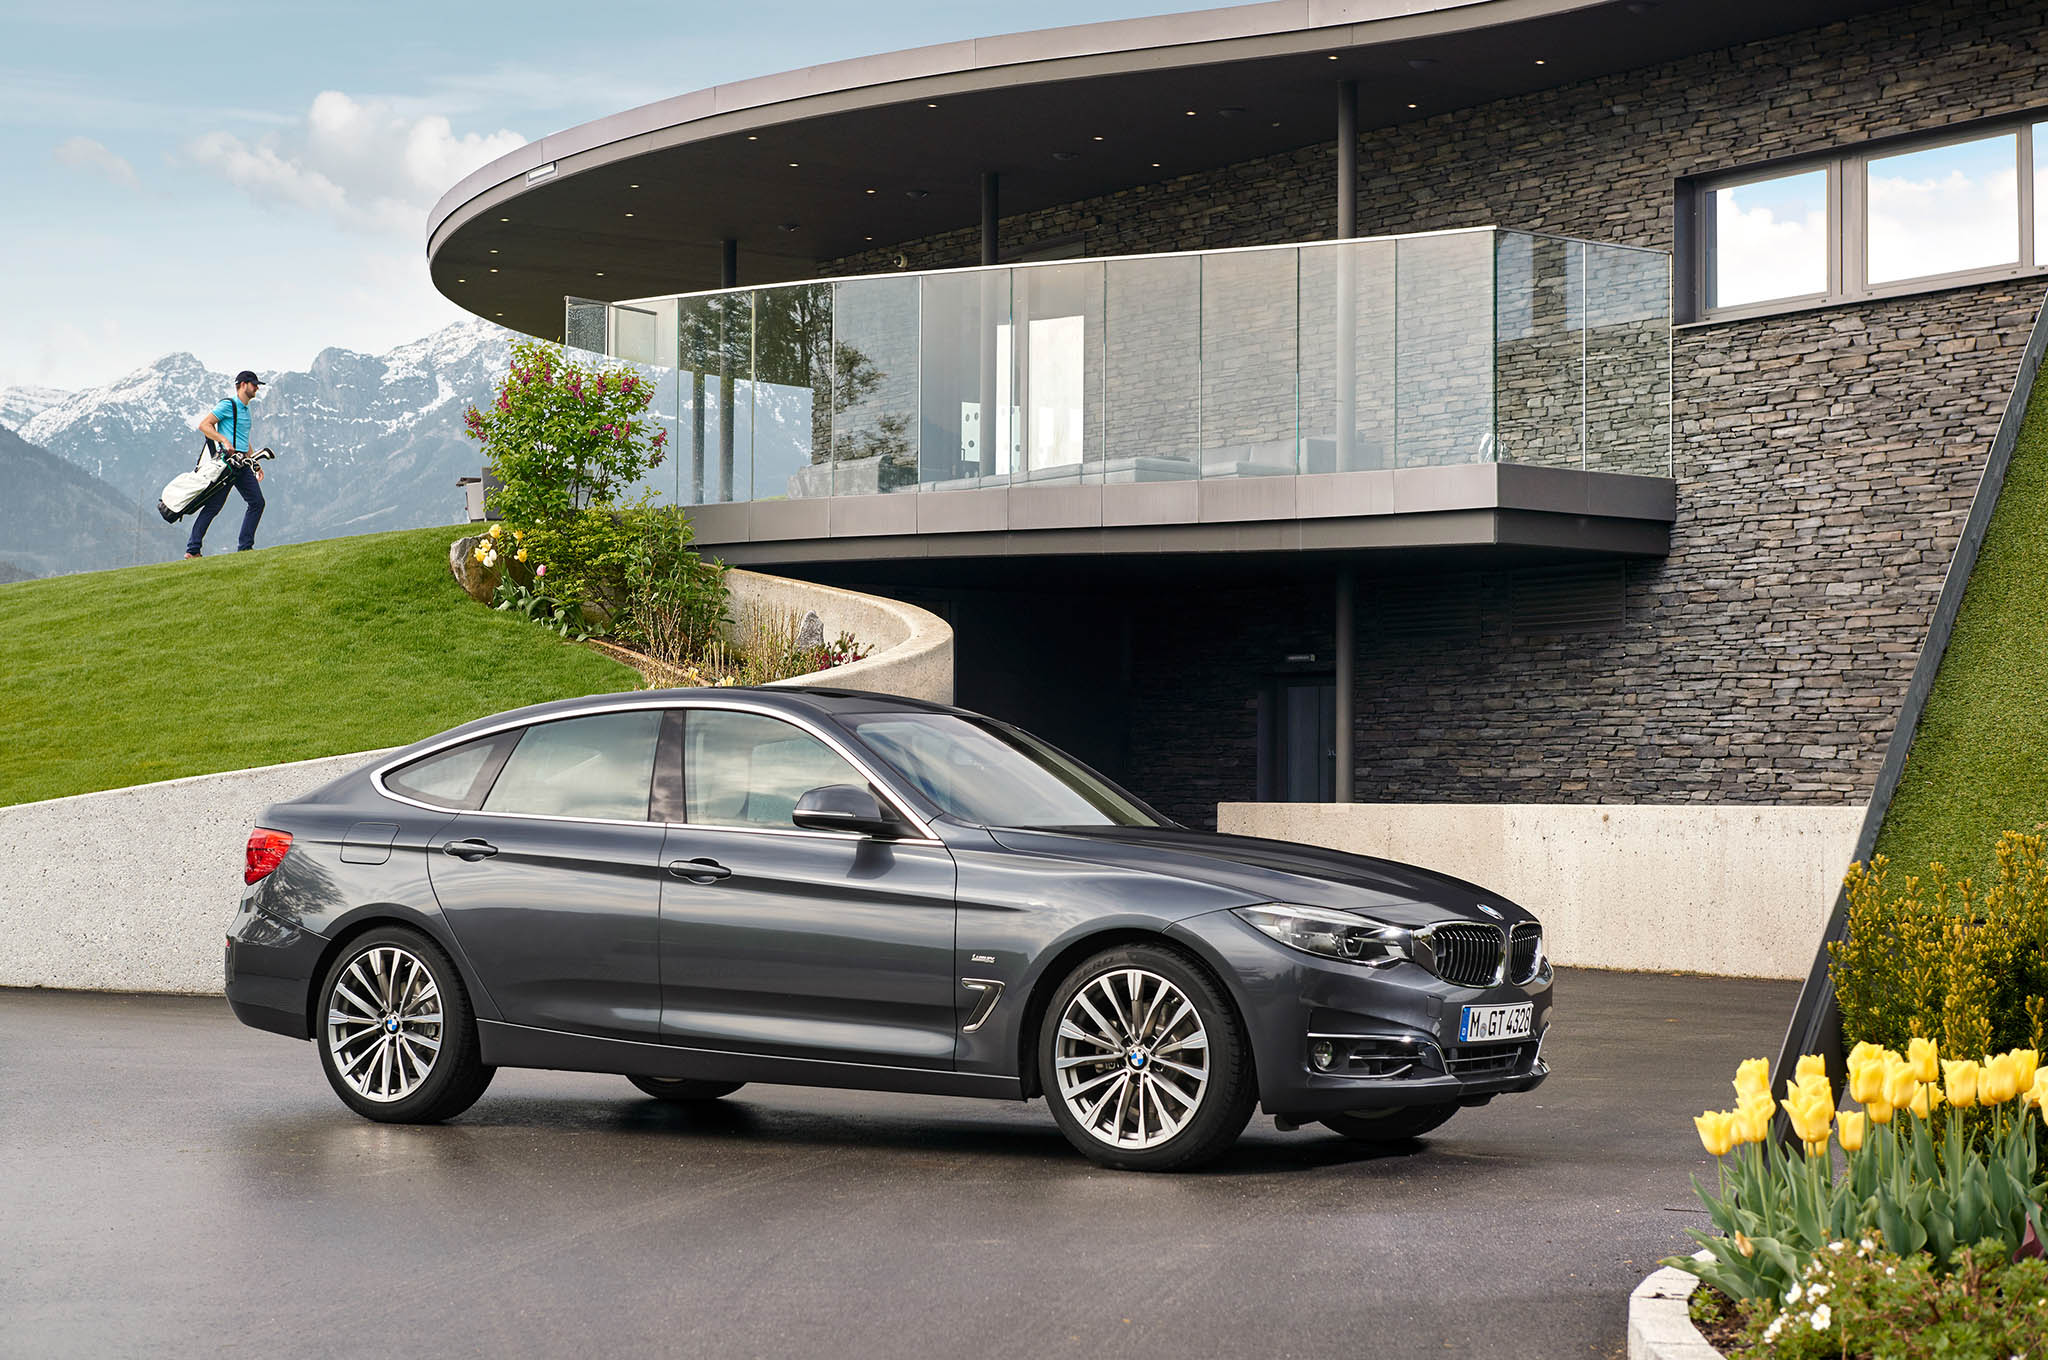 Refreshed bmw 3 series gran turismo debuts for europe automobile show more sciox Choice Image